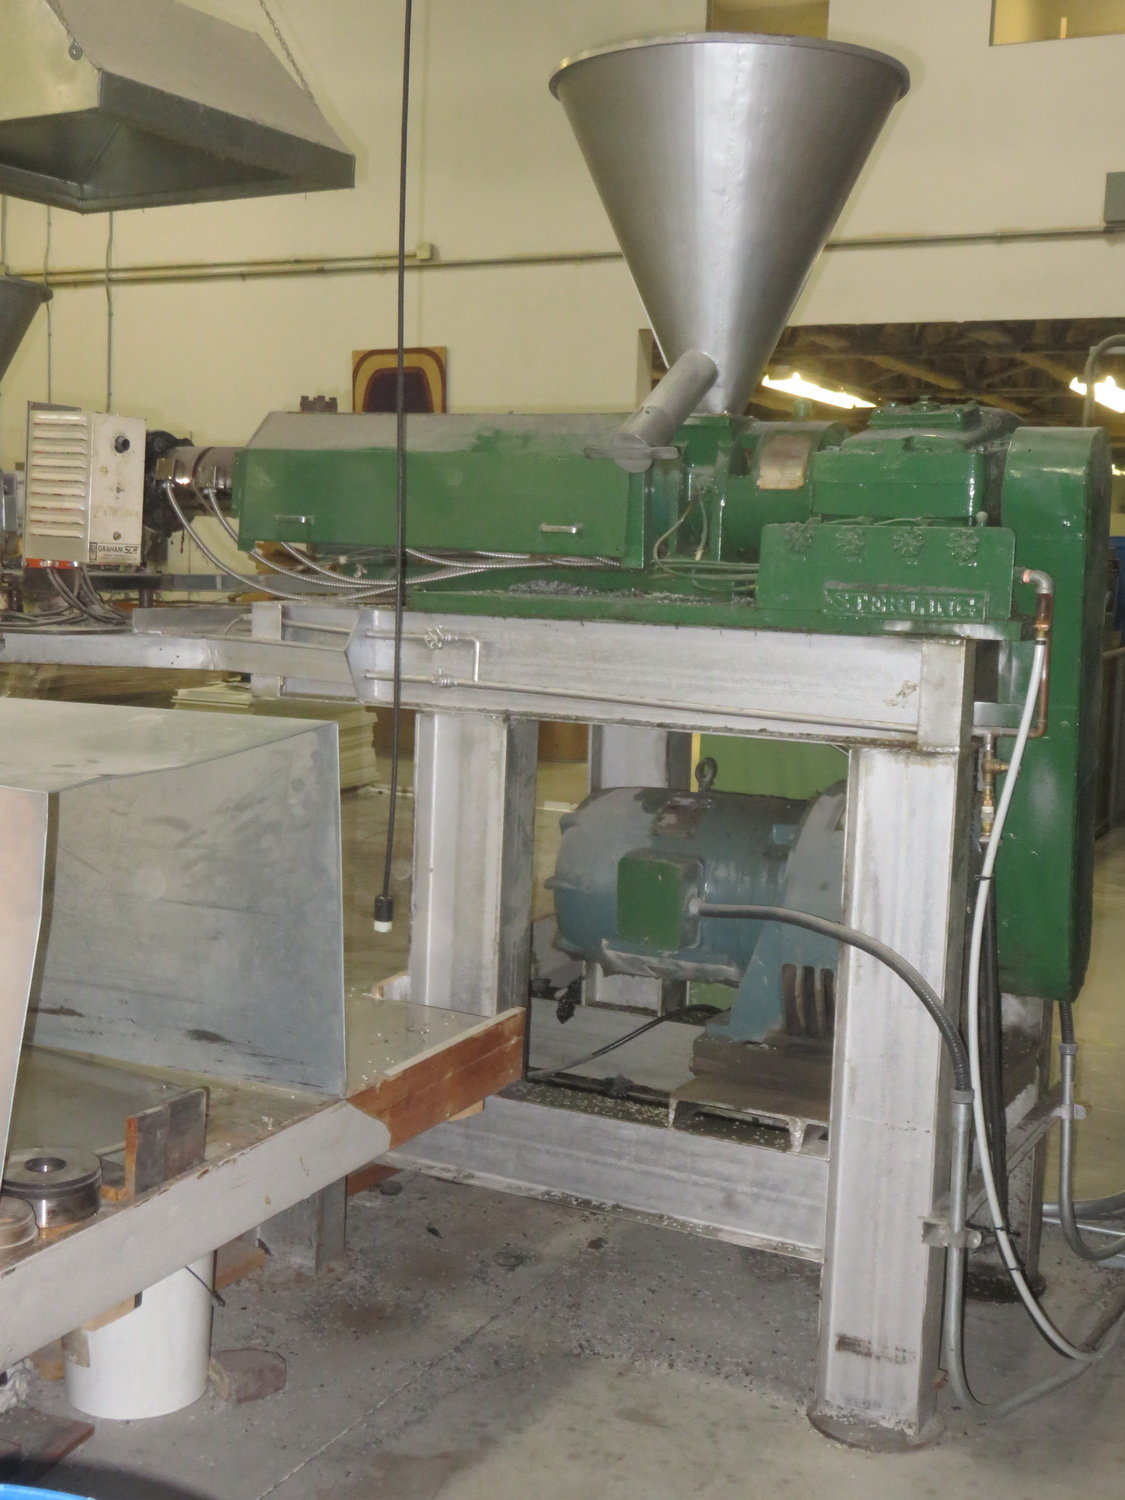 STERLING 2 1/2 X 24-1 PLASTIC EXTRUDER C/W 30HP MOTOR & CONTROL PANEL, S/N 25518 - Image 4 of 4